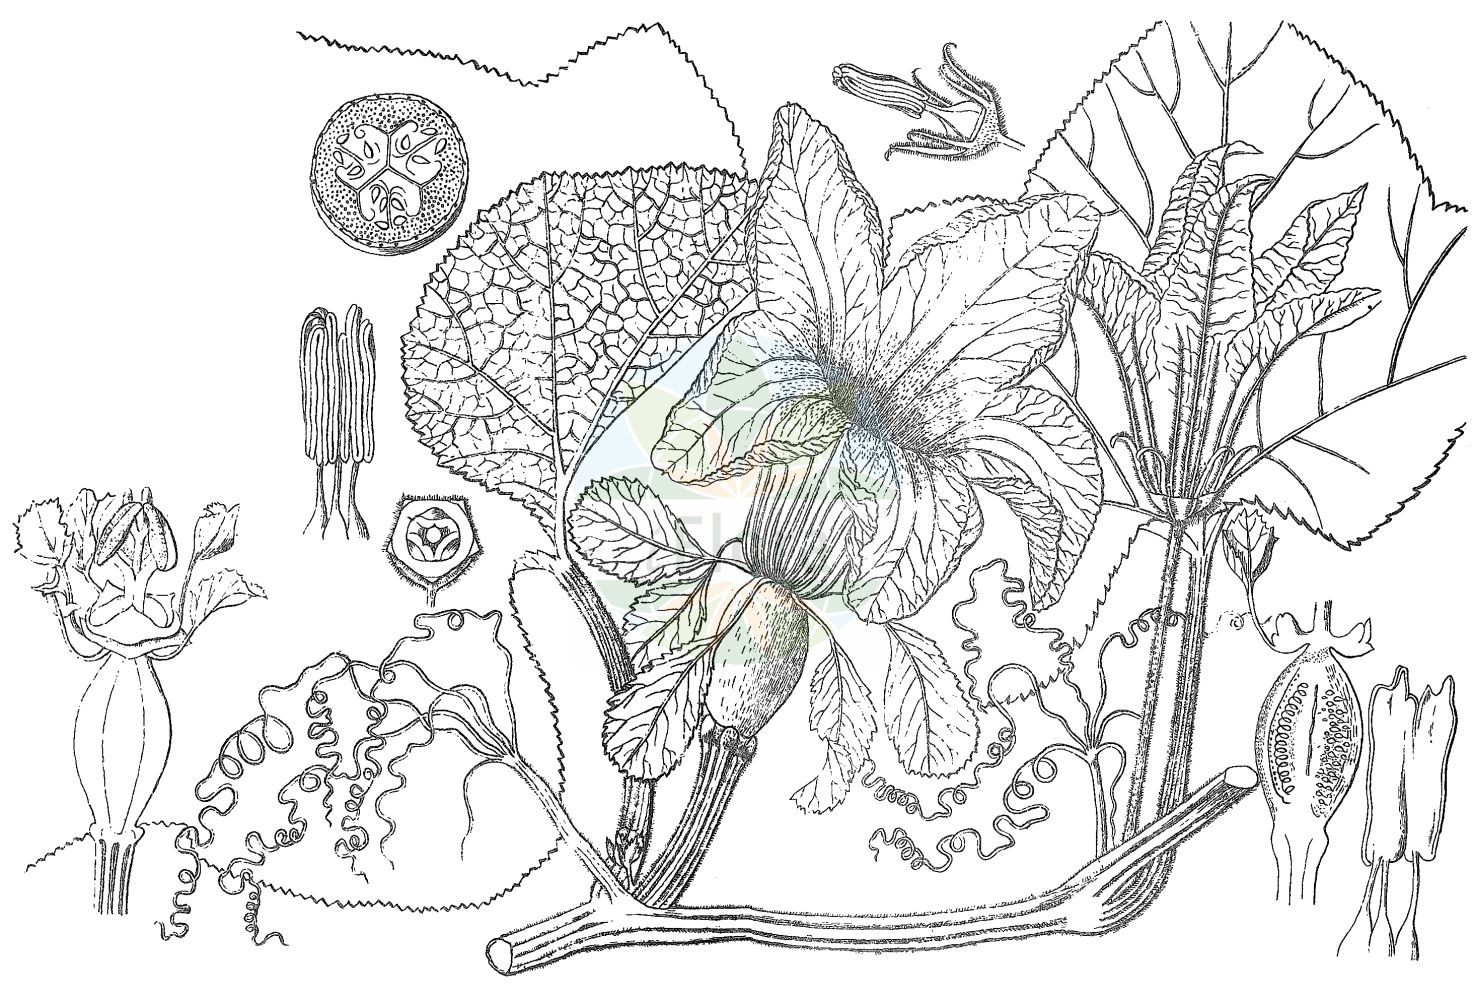 Historische Abbildung von Cucurbita maxima. Das Bild zeigt Blatt, Bluete, Frucht und Same. ---- Historical Drawing of Cucurbita maxima.The image is showing leaf, flower, fruit and seed.(Cucurbita maxima,Cucurbita maxima,Cucurbita pileiformis,Cucurbita turbaniformis,Cucurbita,Cucurbitaceae,Kuerbisgewaechse,Cucurbit family,Blatt,Bluete,Frucht,Same,leaf,flower,fruit,seed,Kirtikar & Basu (1918))